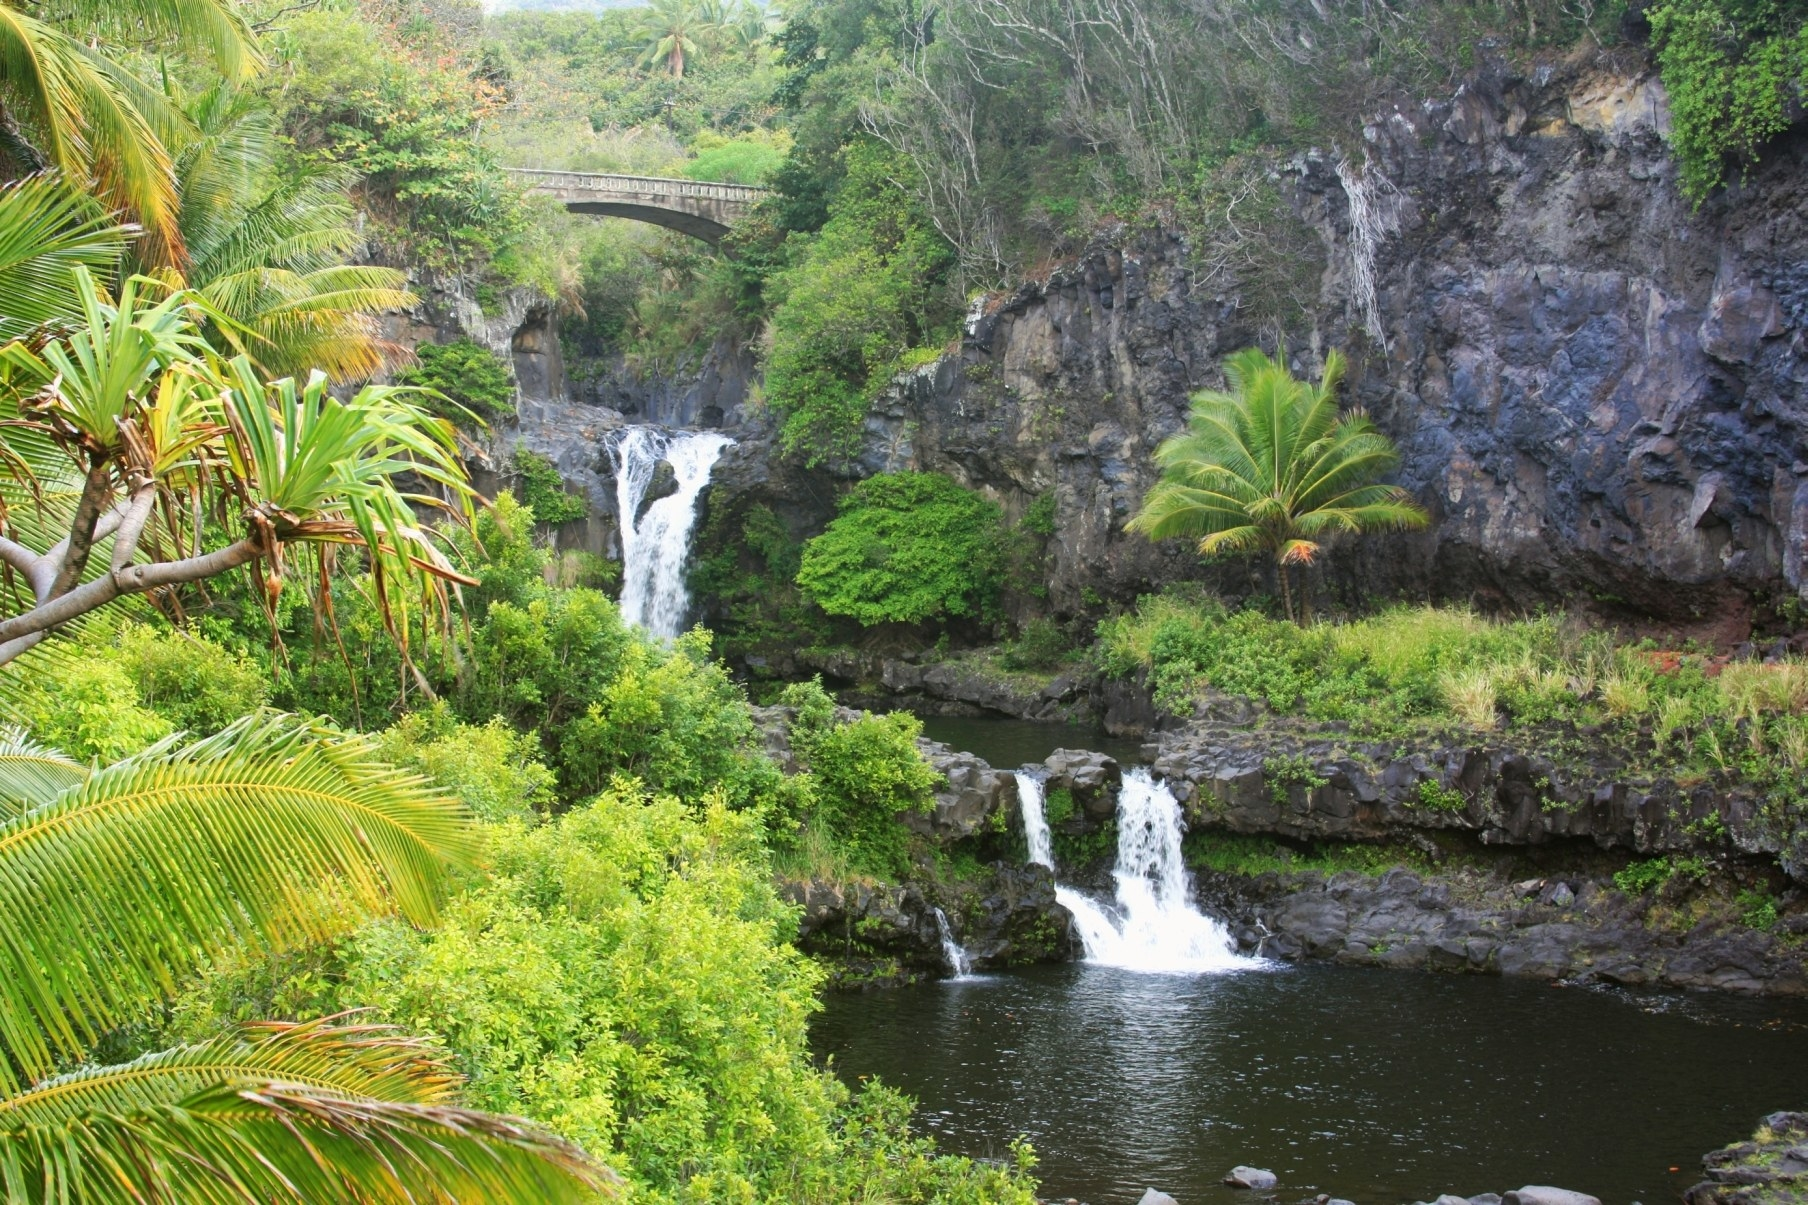 A series of waterfalls and pools in a lush landscape